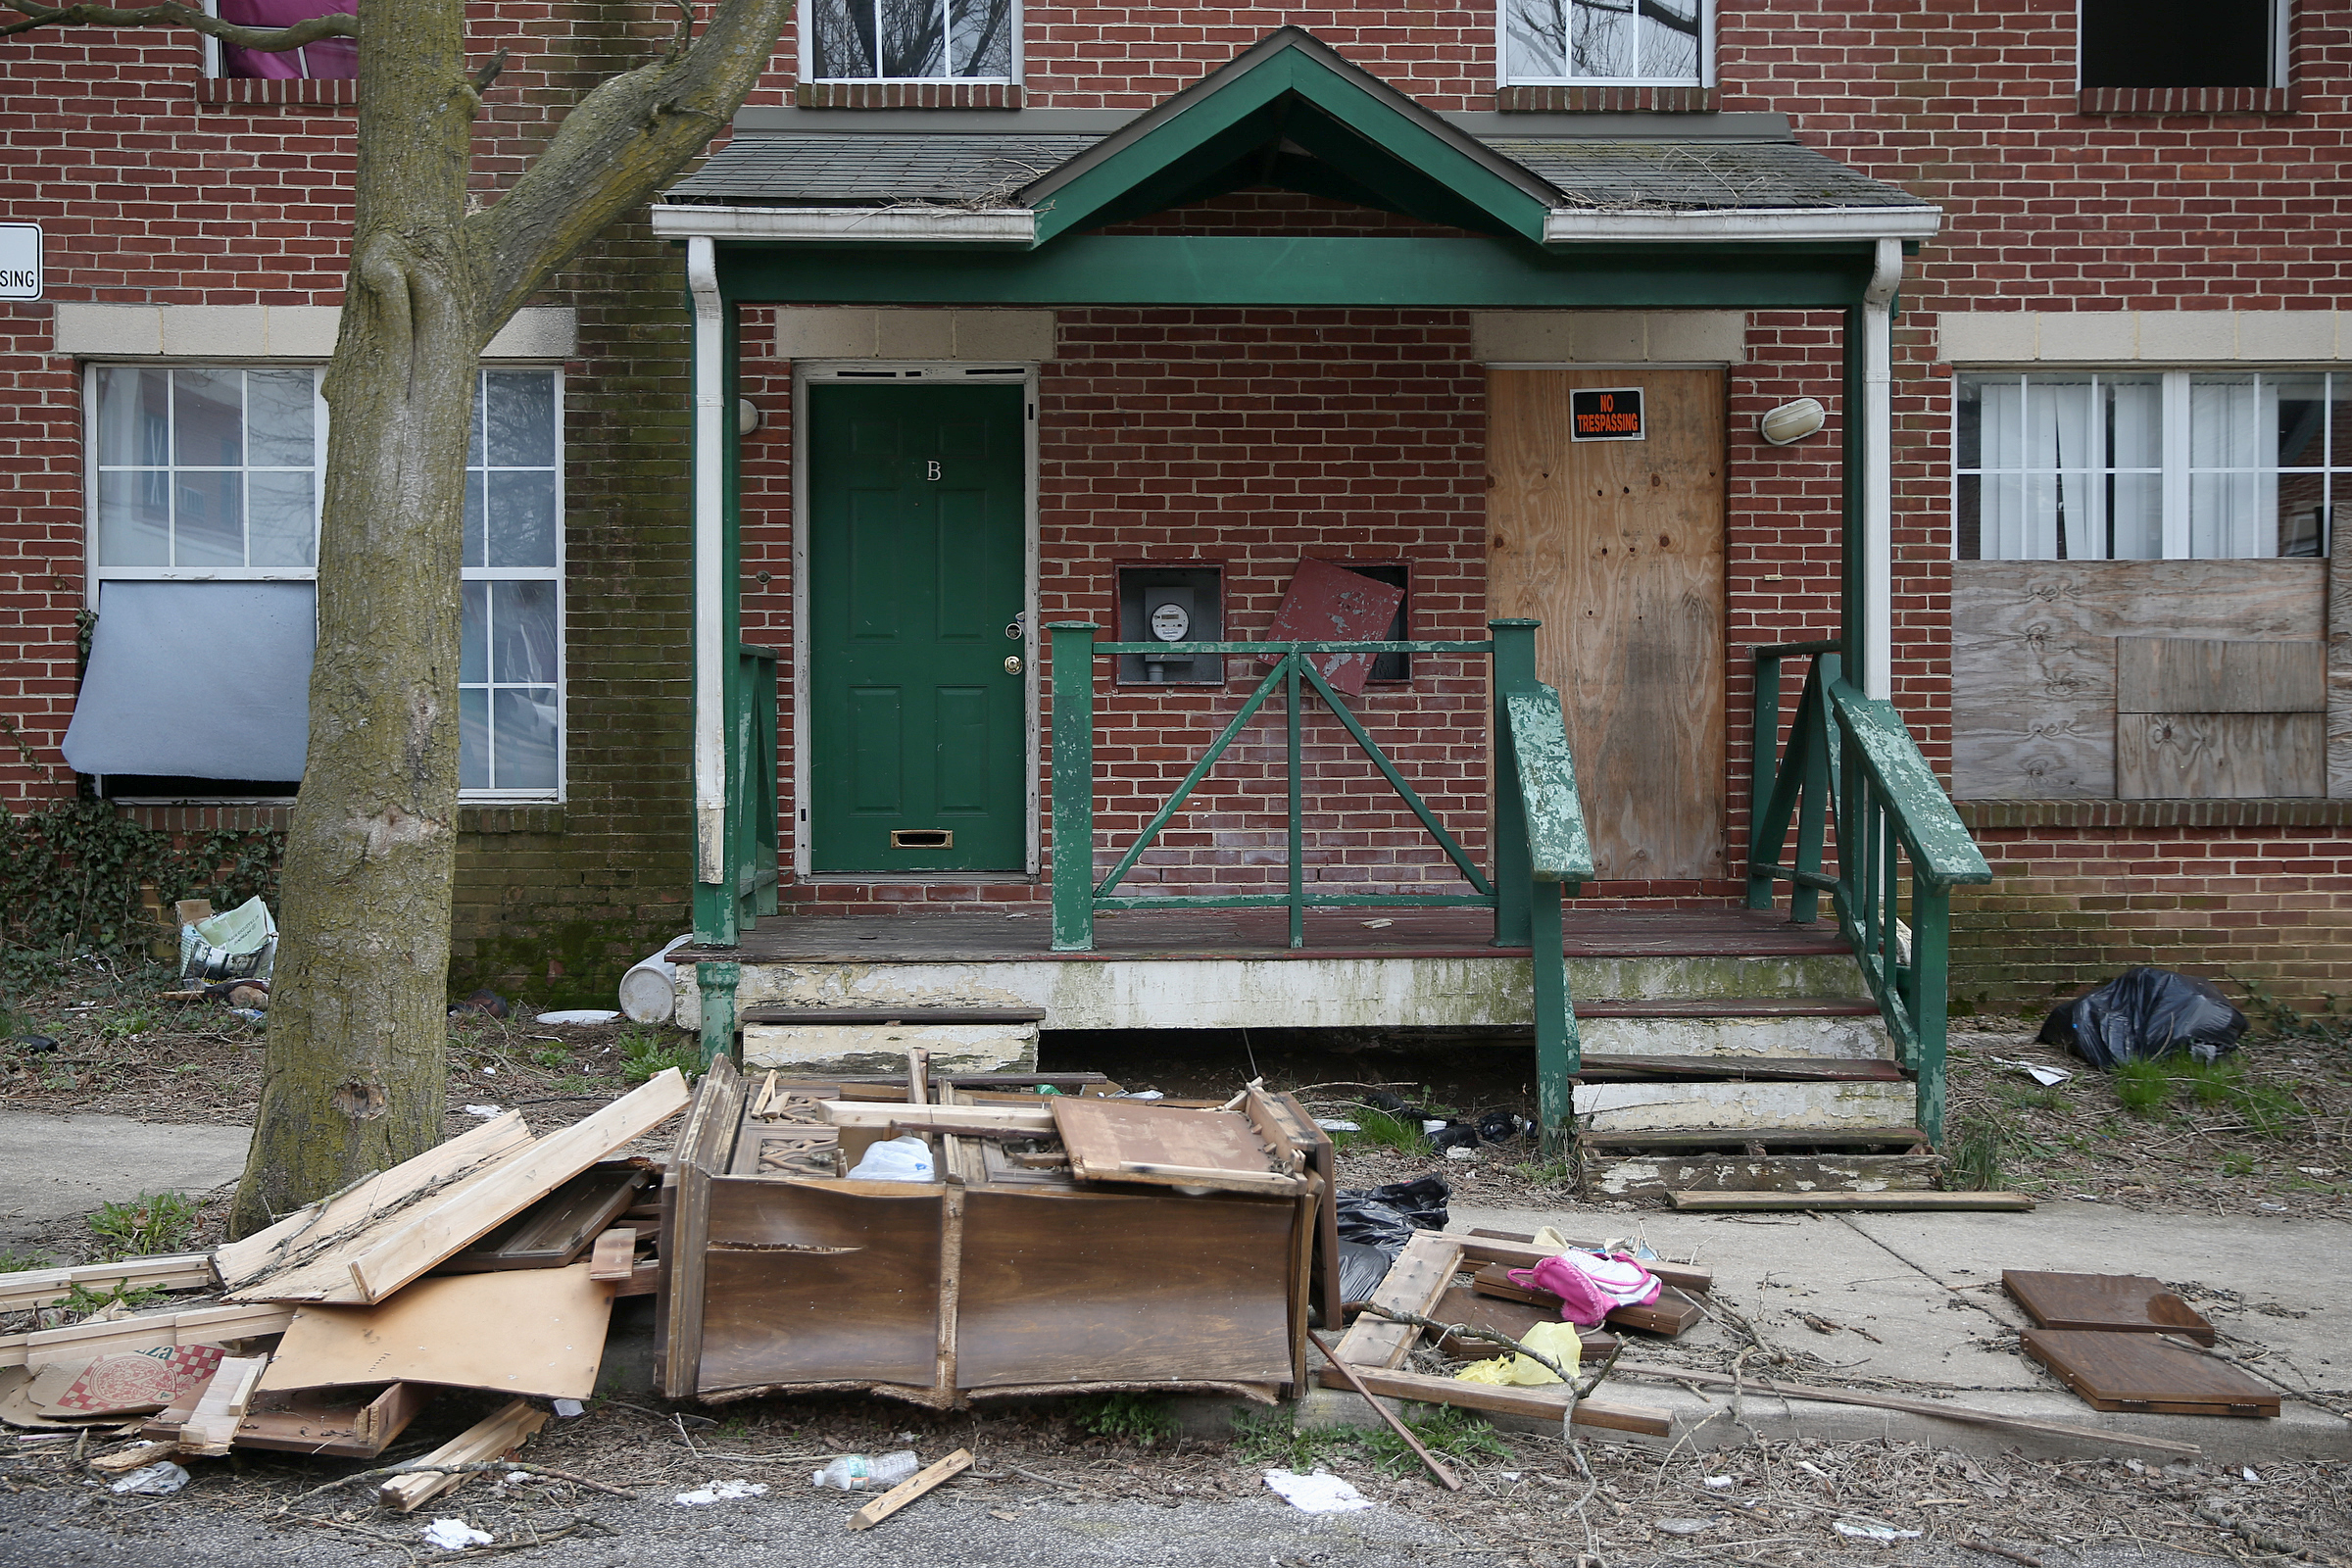 Built in the 1990s by Germantown Settlement, this housing complex at Collom and Lena streets in Germantown is boarderd up because of neglect.